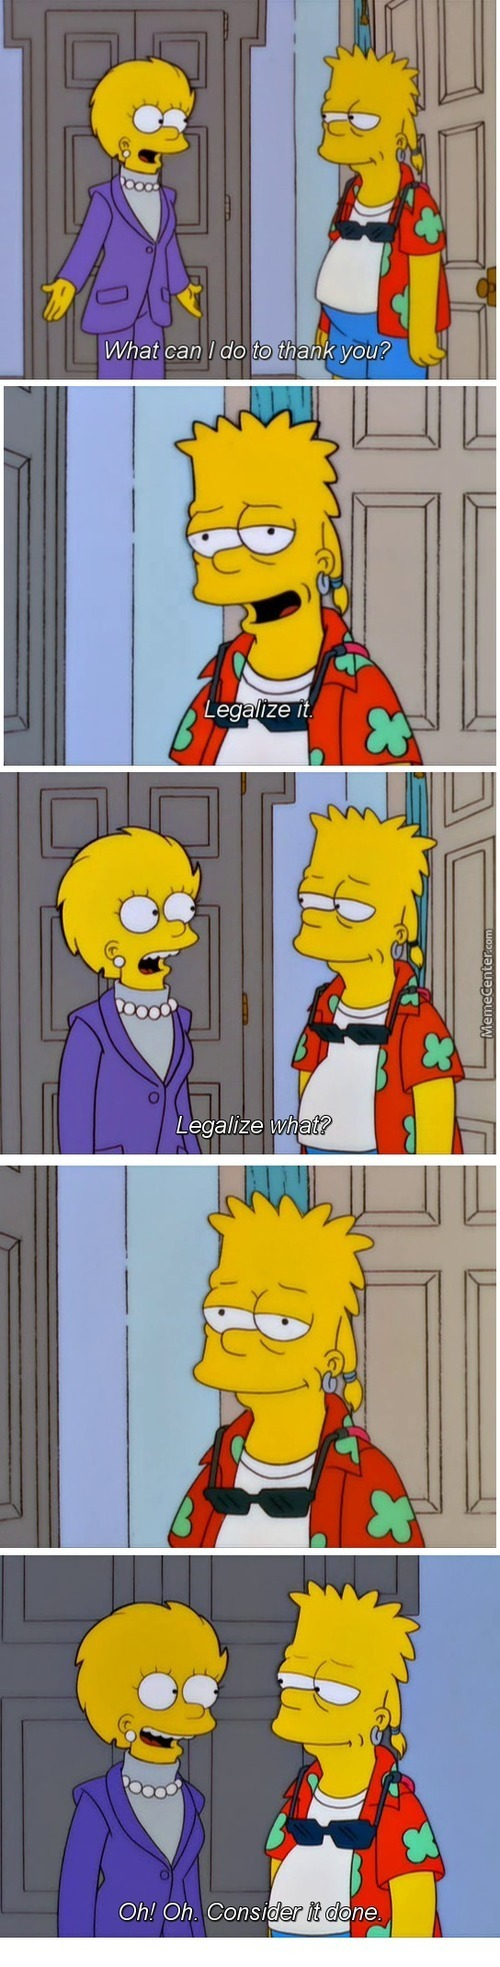 Bart Knows Whats The Best For Ppl